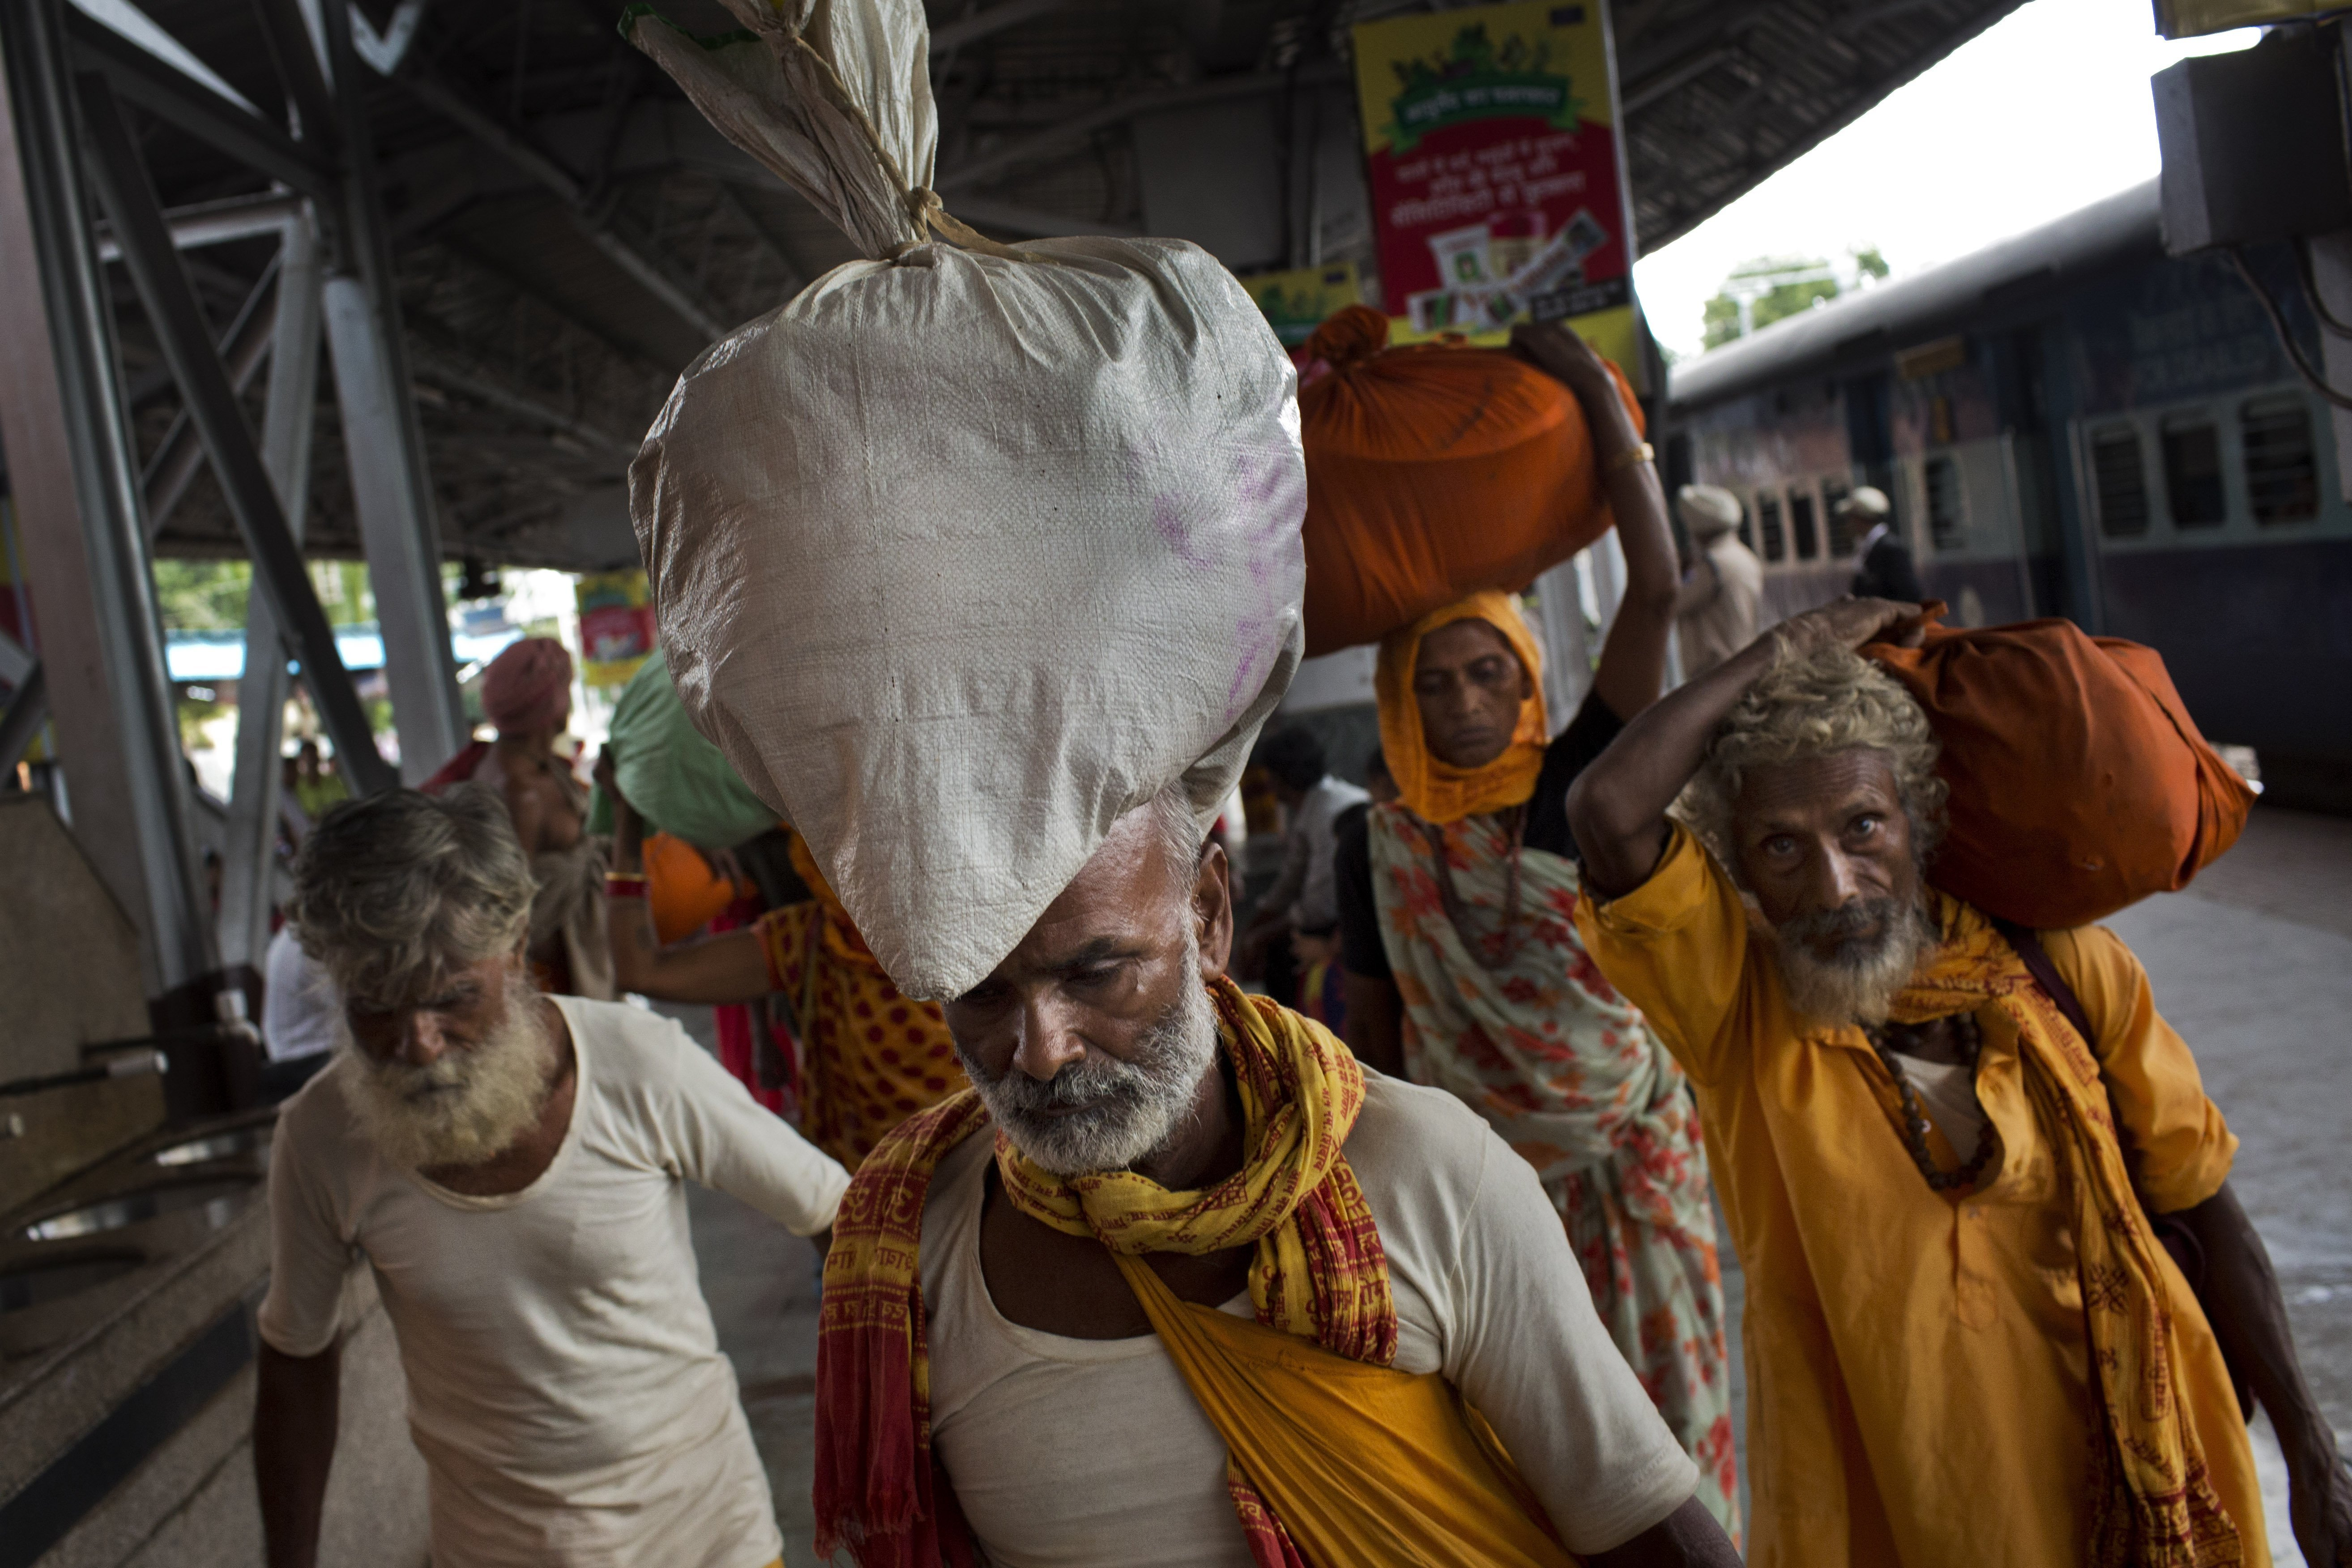 Hindu pilgrims arrive at a train station in Nasik, India, on Aug. 28, 2015.